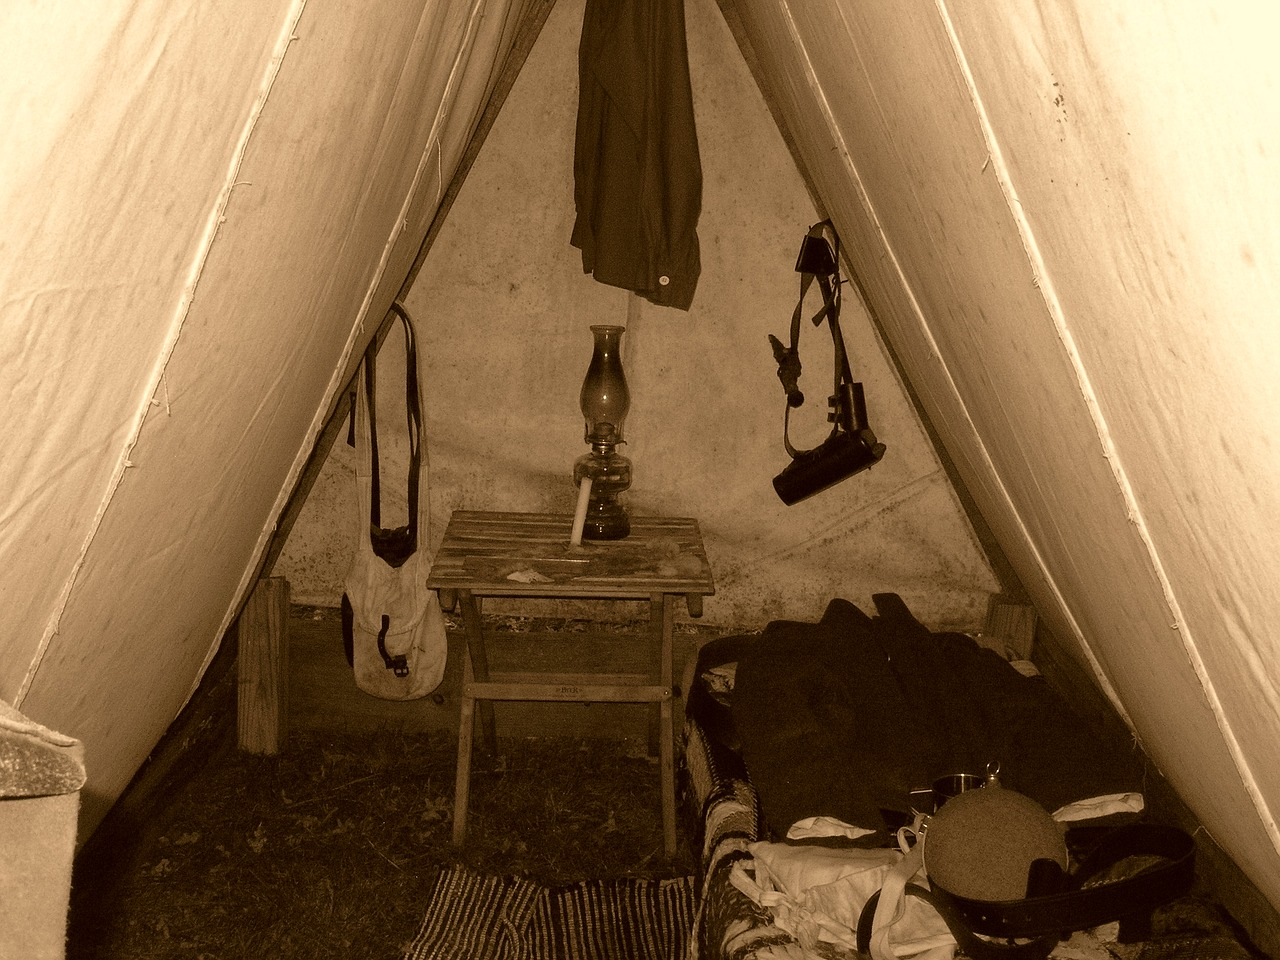 Civil war,tent,camp,lantern,sepia - free image from needpix.com